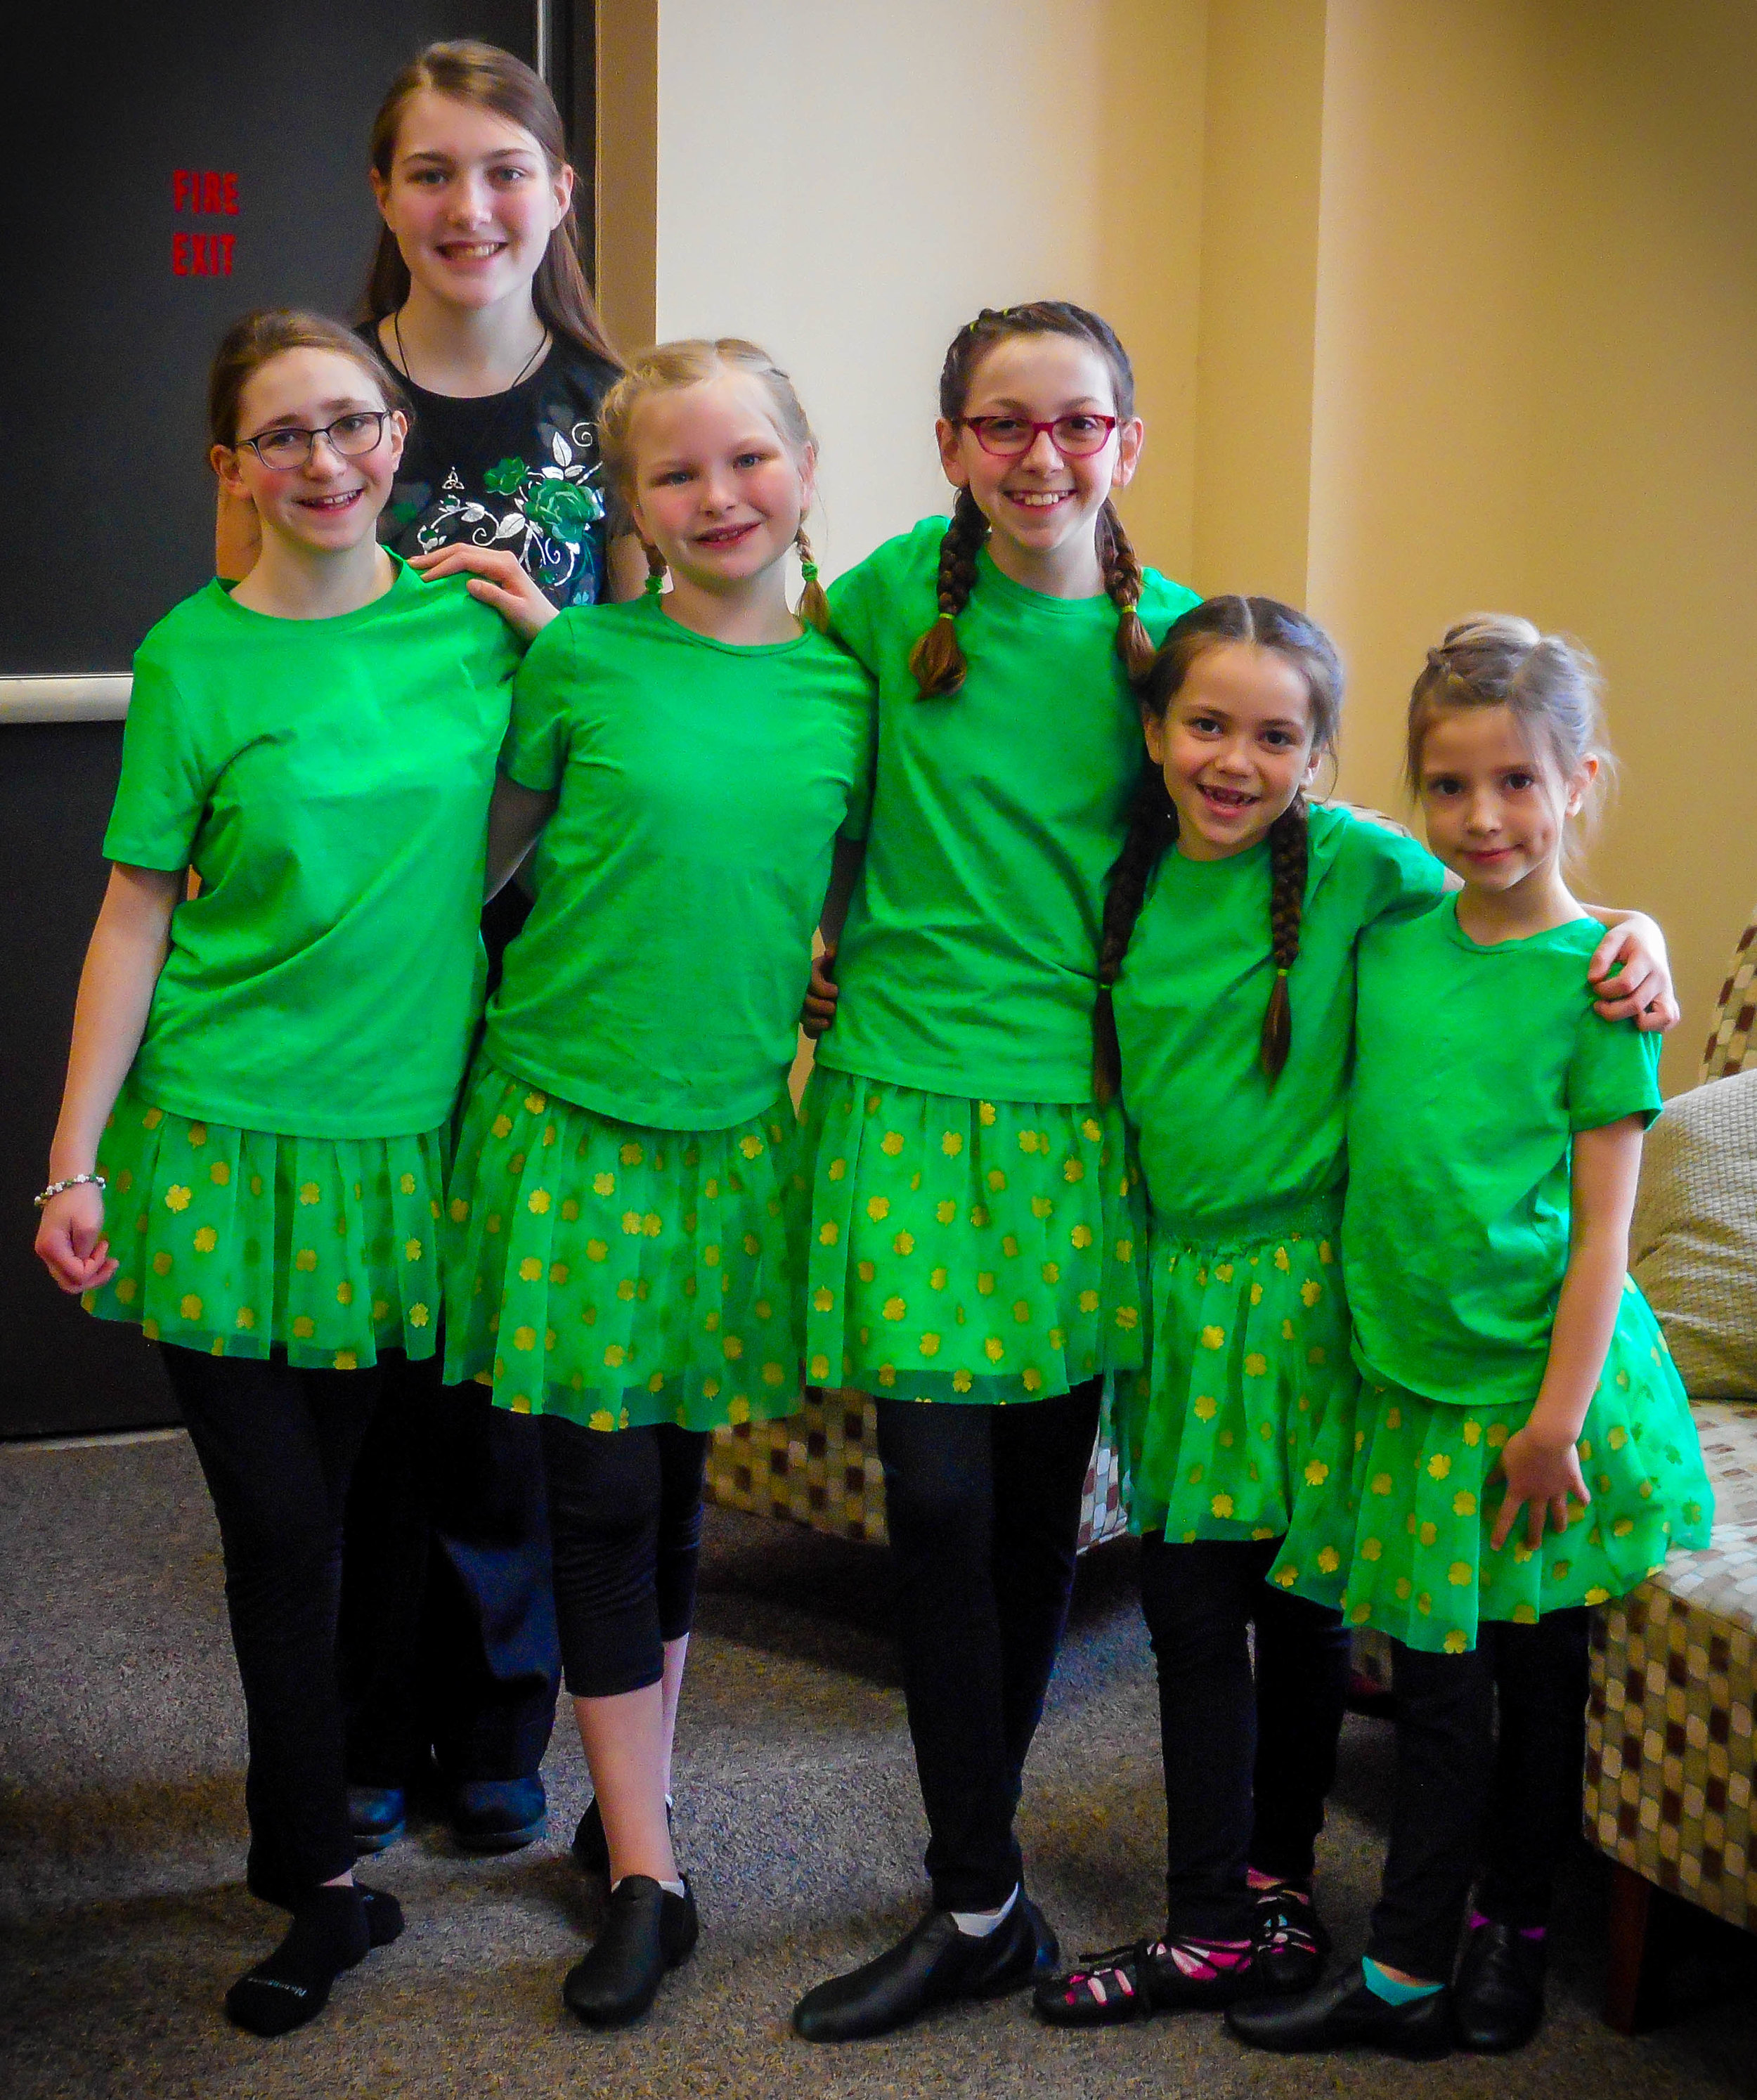 Irish Step Dance performance at West Iron library for Story Time in honor of St. Patrick's Day!